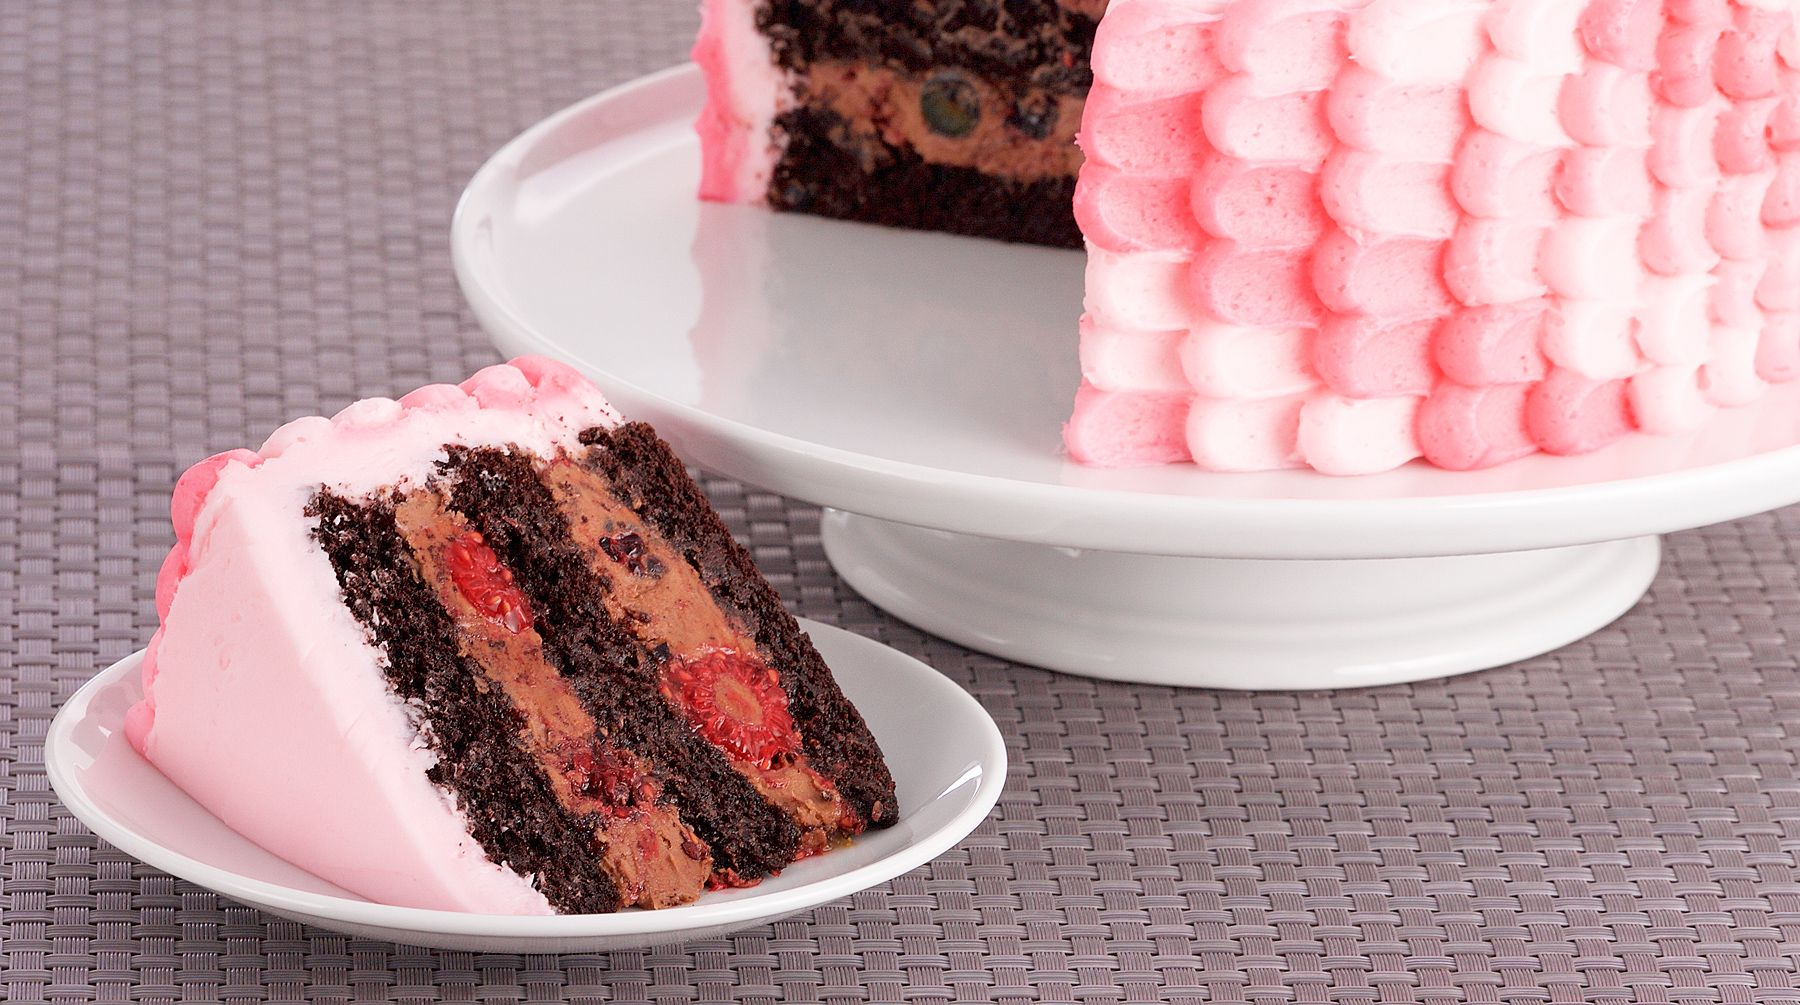 Bake with anna olson recipes chocolate berry cake with italian bake with anna olson recipes chocolate berry cake with italian buttercream asian food forumfinder Gallery